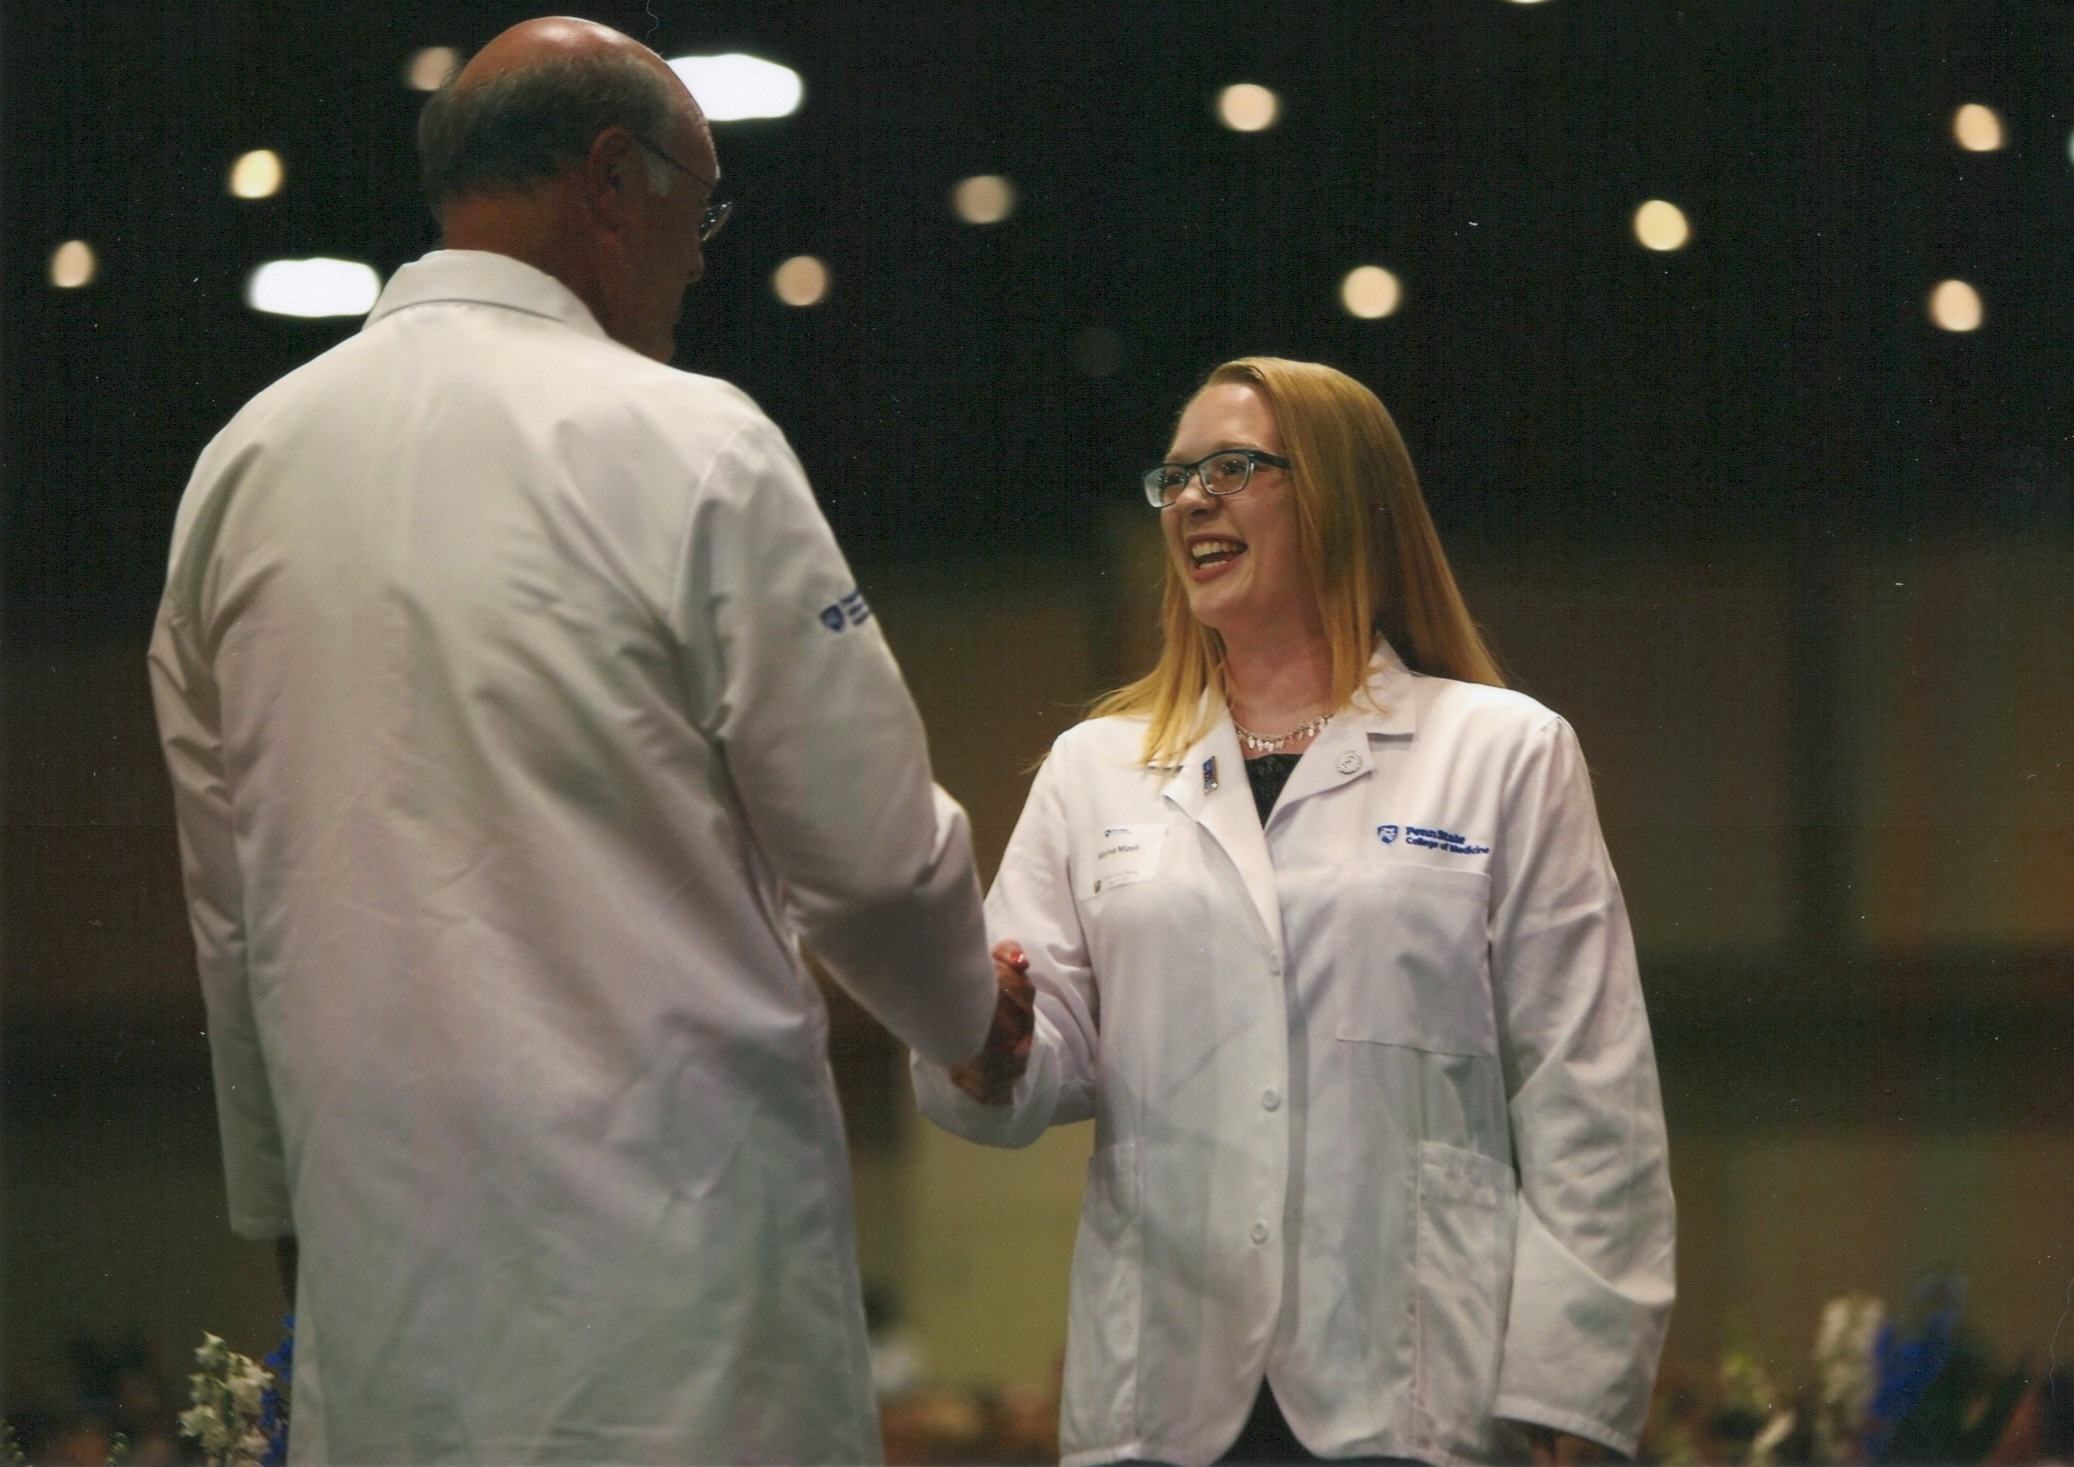 A woman wearing a white coat shakes the hand of a man on a stage.